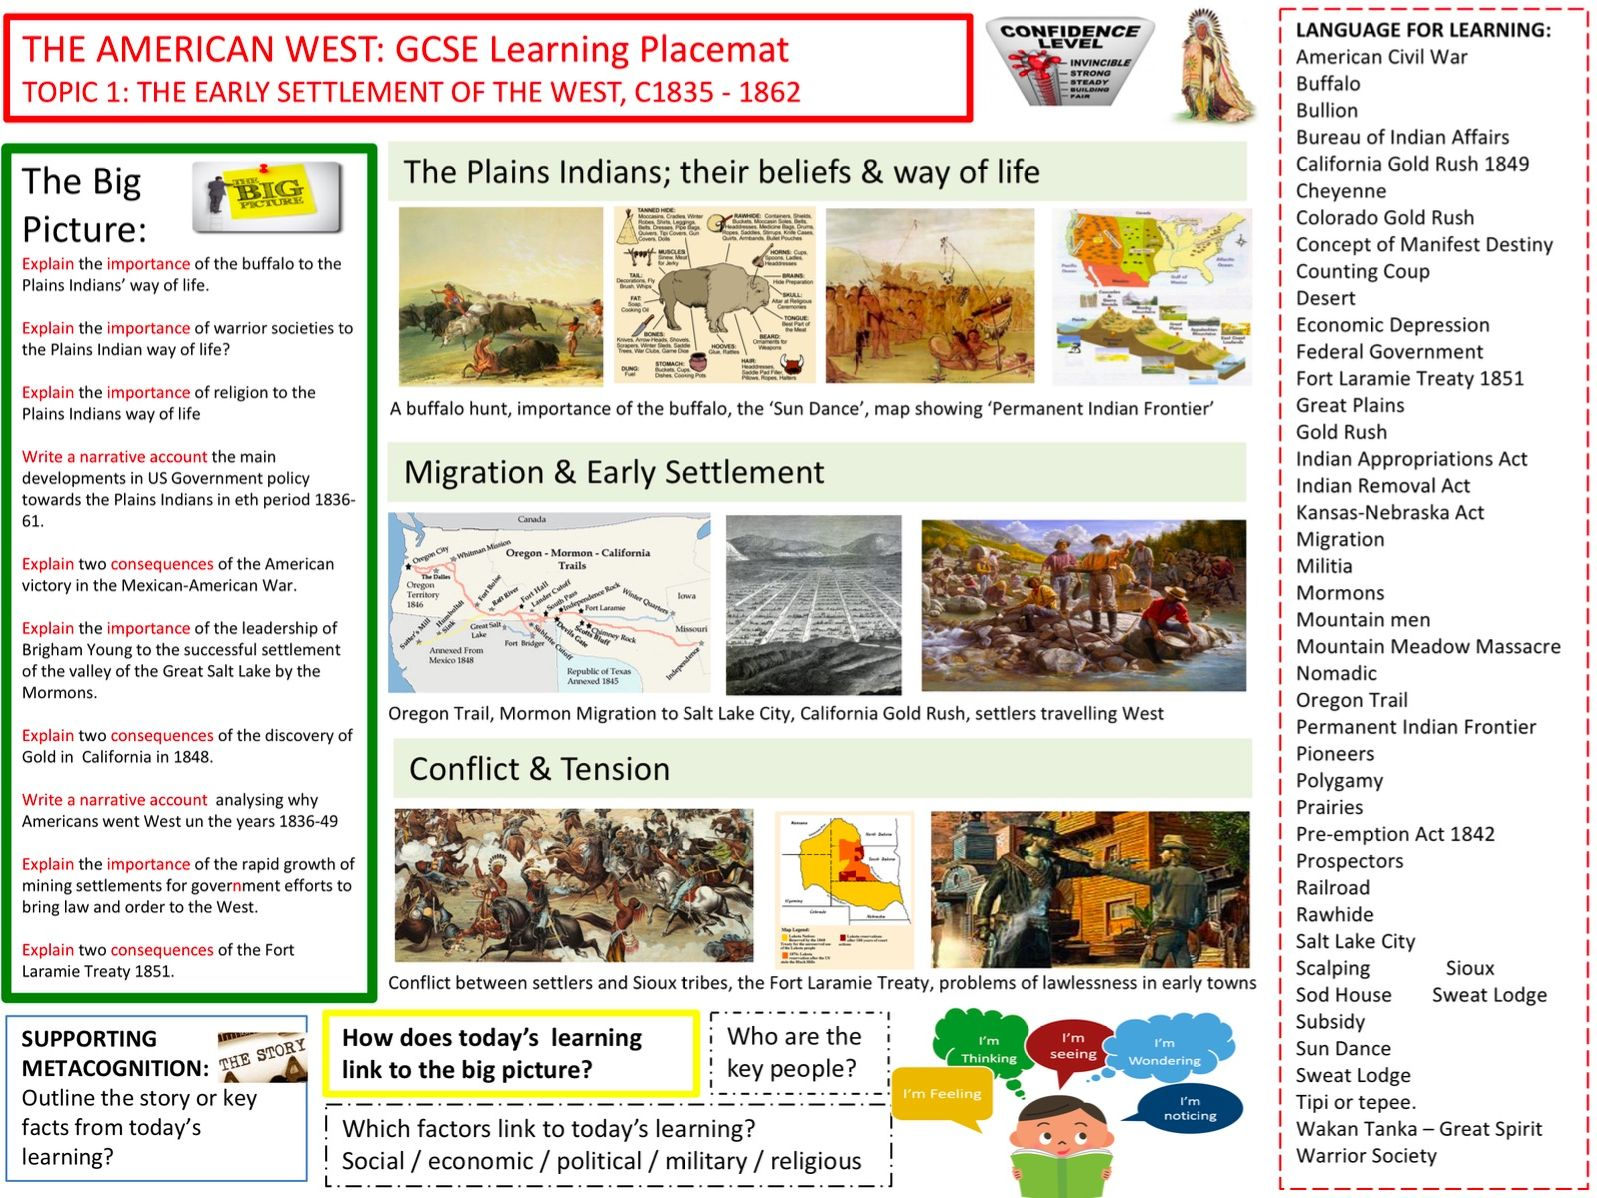 9-1 Edexcel History Learning/Topic Placemats for The American West